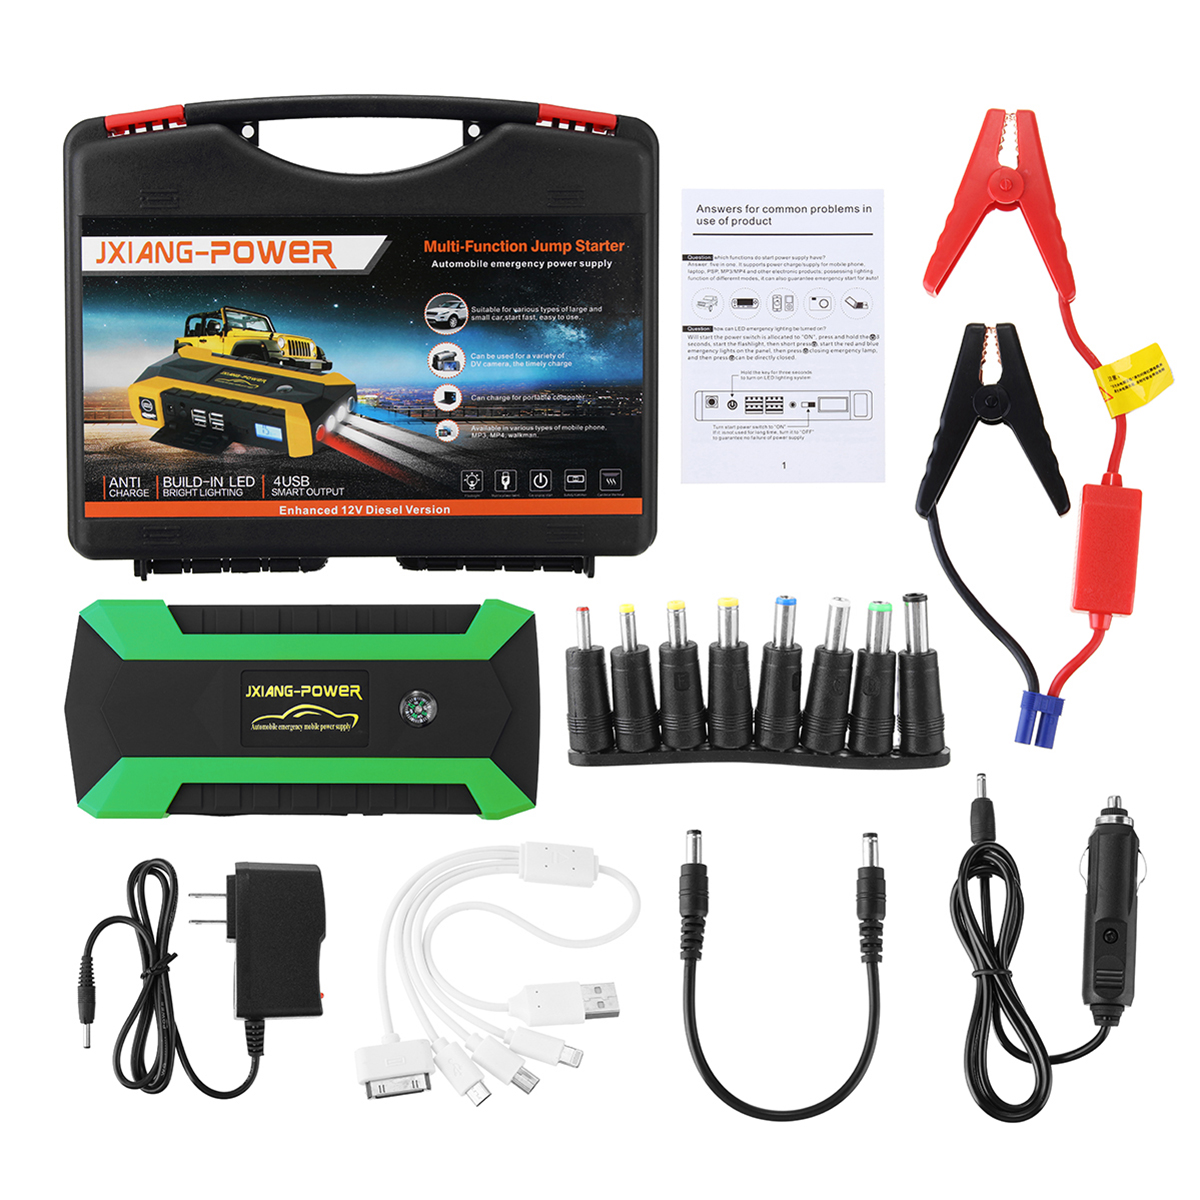 iMars 16000mAh LED 4 USB Car Jump Starter Pack Booster Charger Battery Power Bank 600A